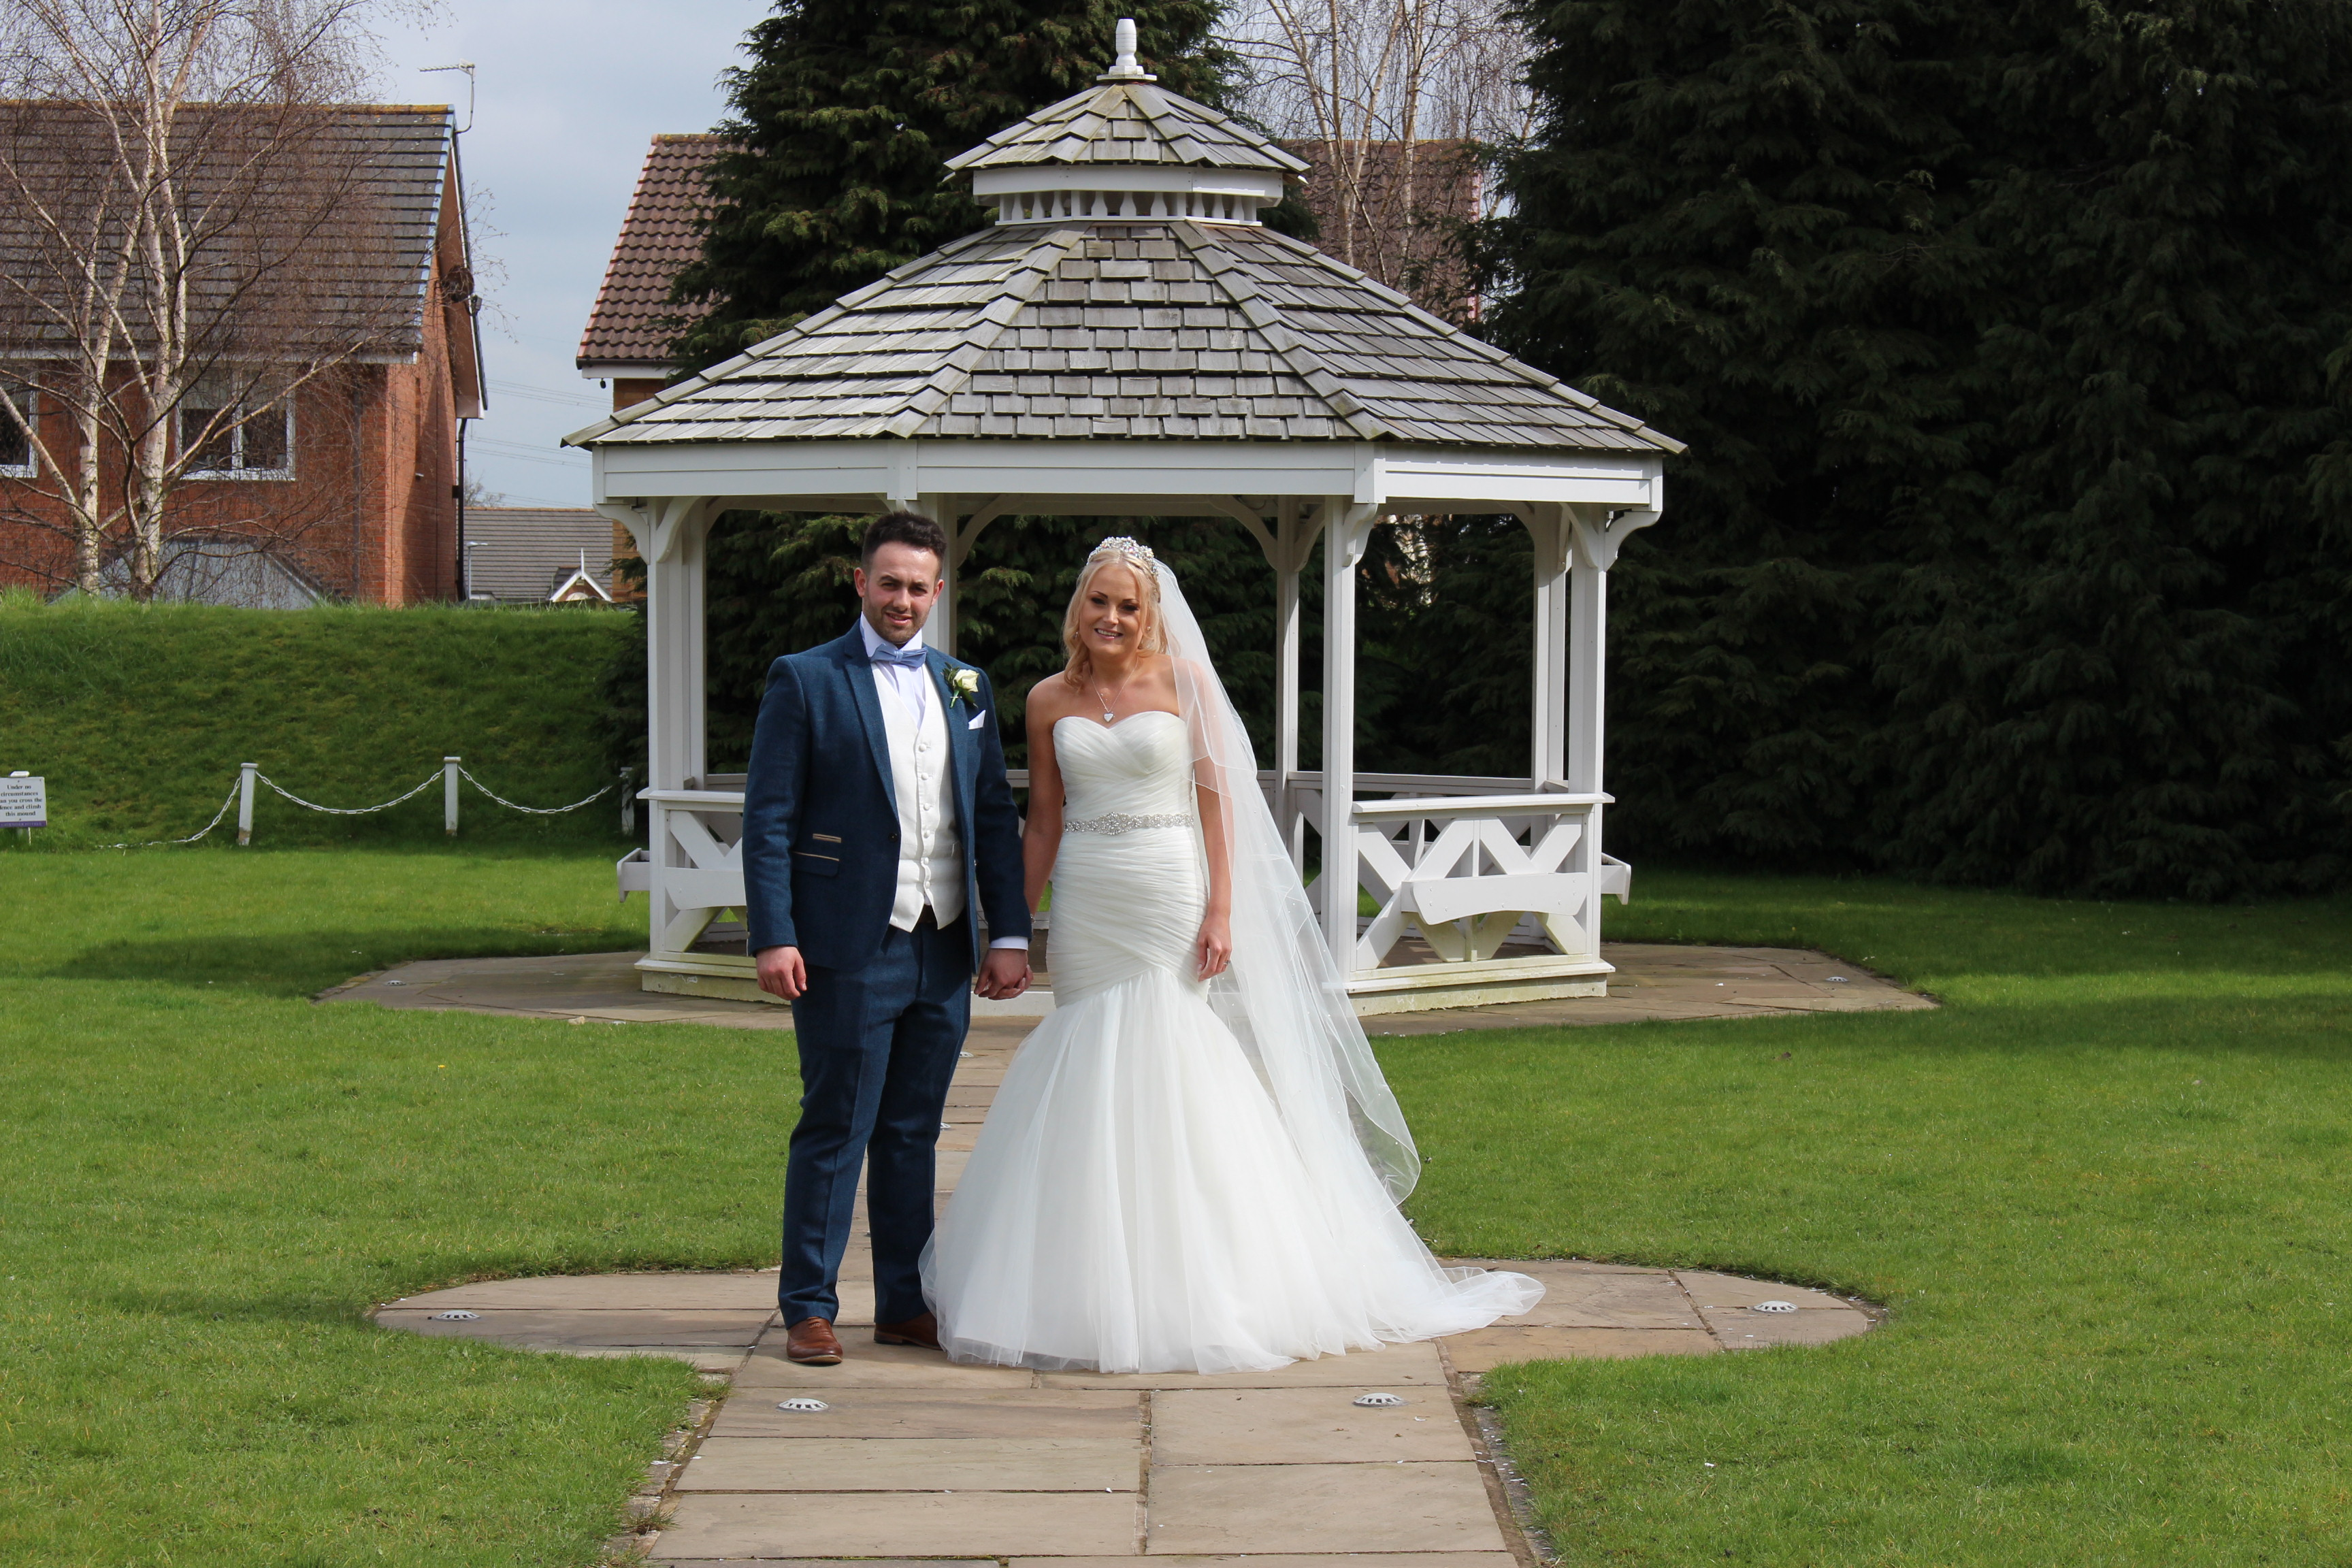 One of our Cheshire wedding videos